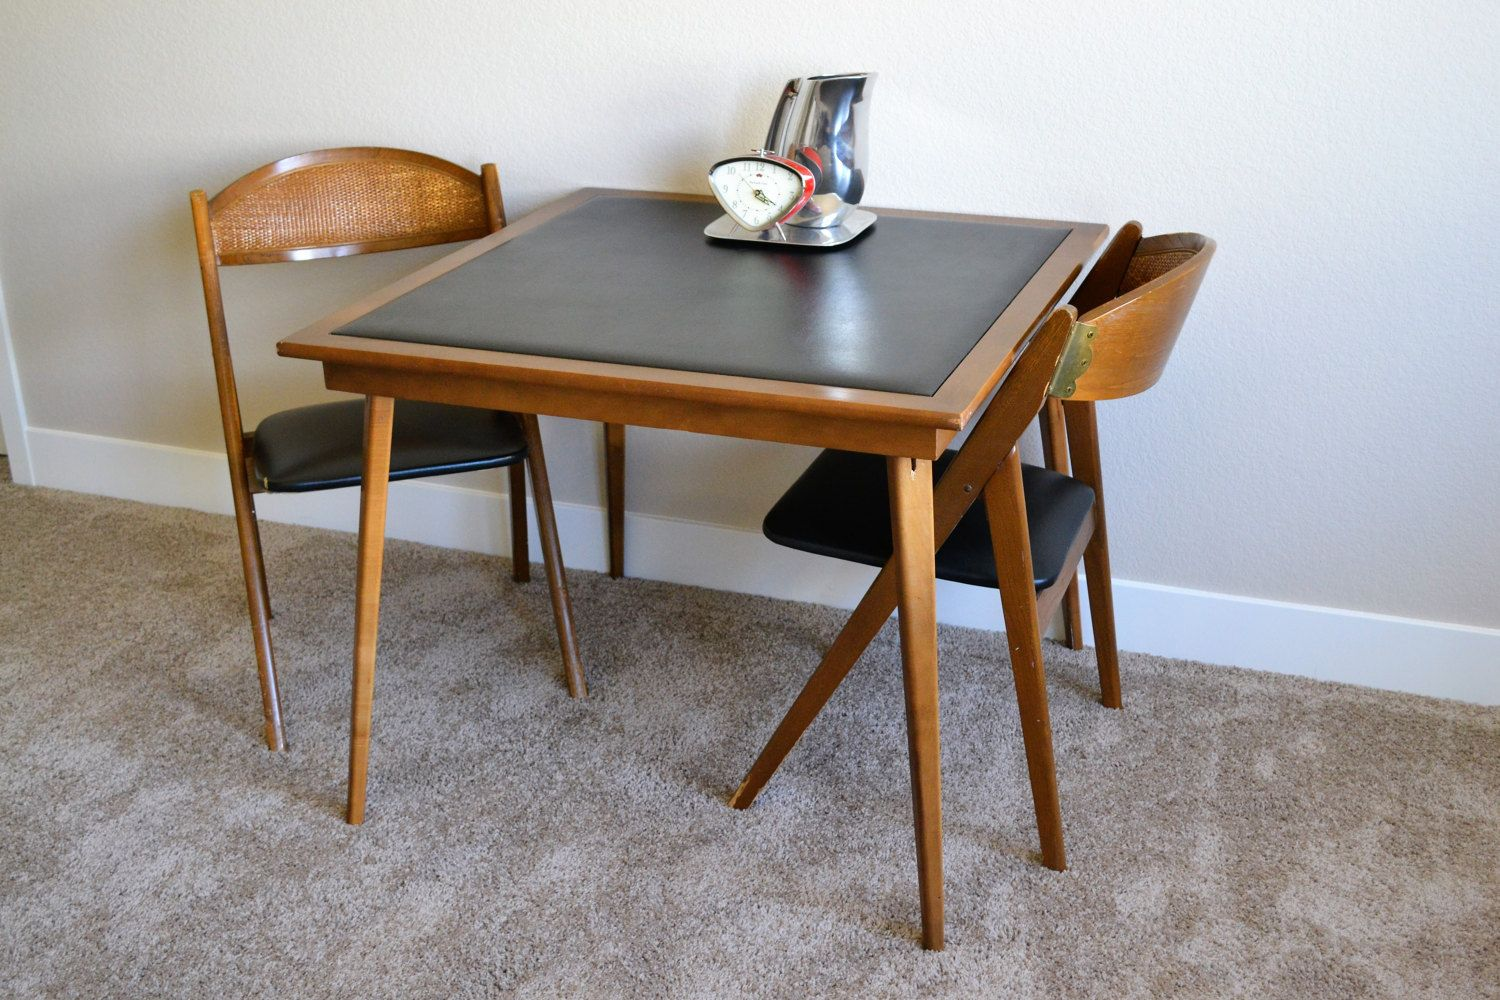 Vintage Stakmore Folding Table Two Chairs Danish Furniture Table